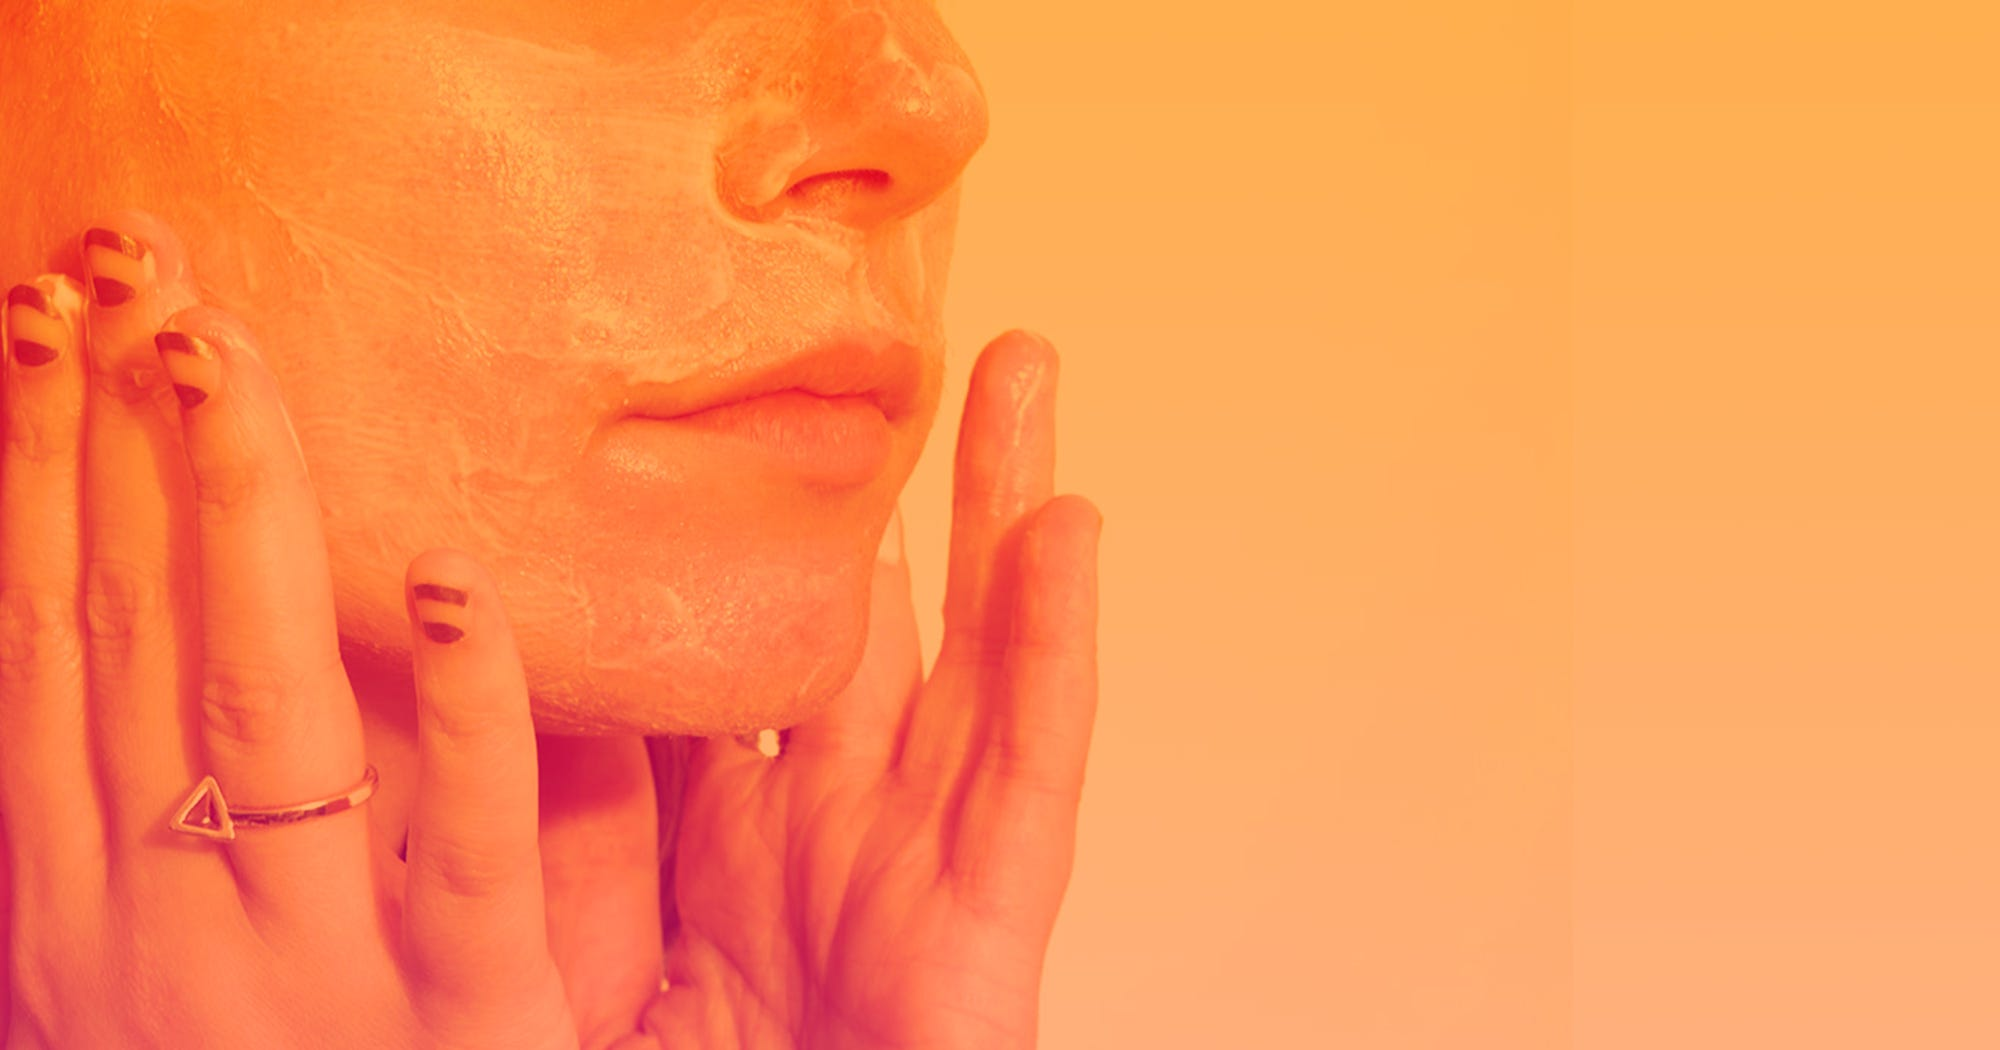 How To Make Your Skin Look Crazy-Good With Just One Ingredient